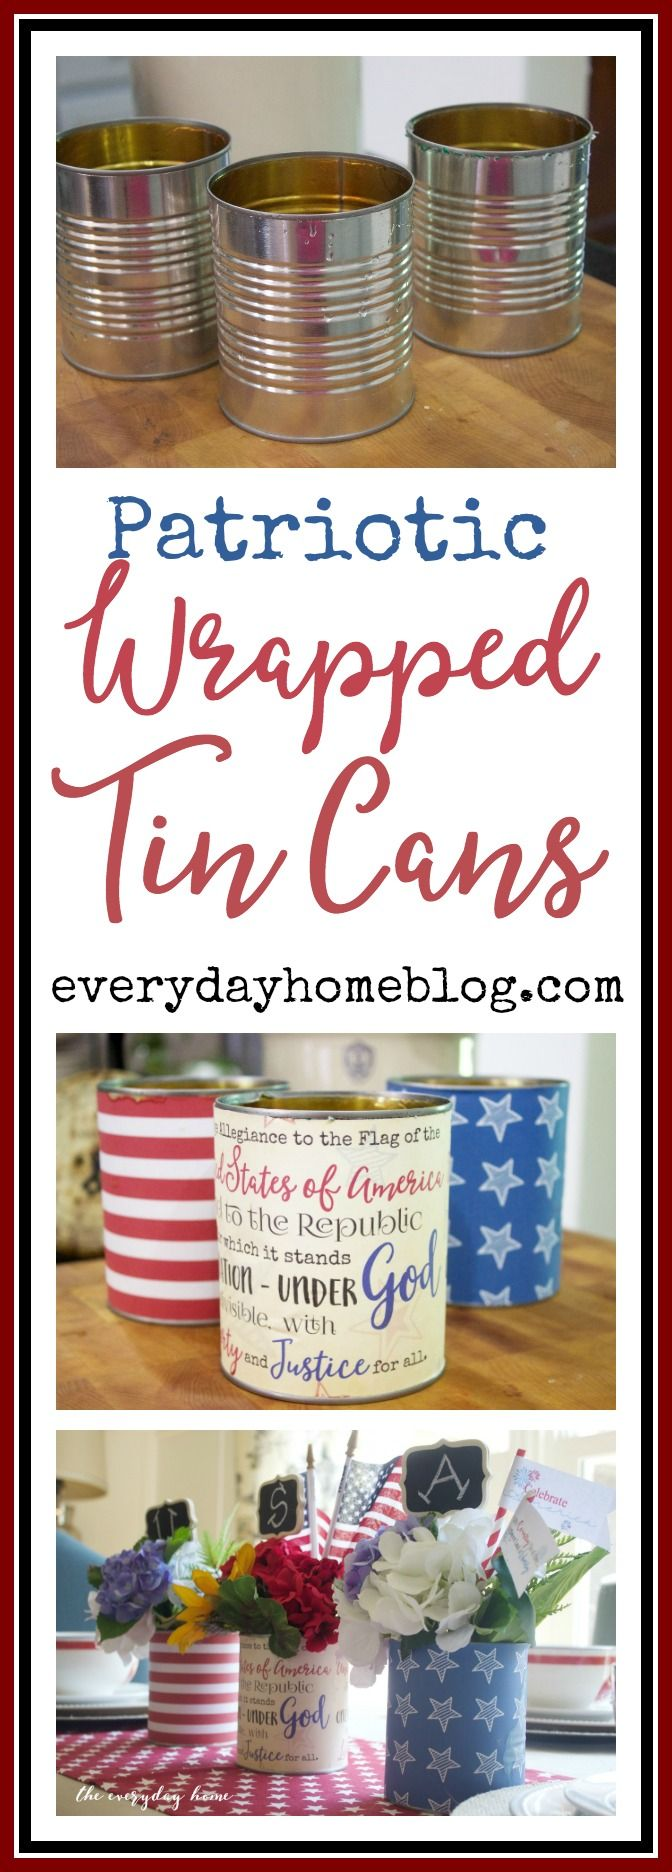 Using recycled tin cans & printables, you can wrap the cans & add fresh flowers for a fun Patriotic Centerpiece | The Everyday Home | everydayhomeblog.com